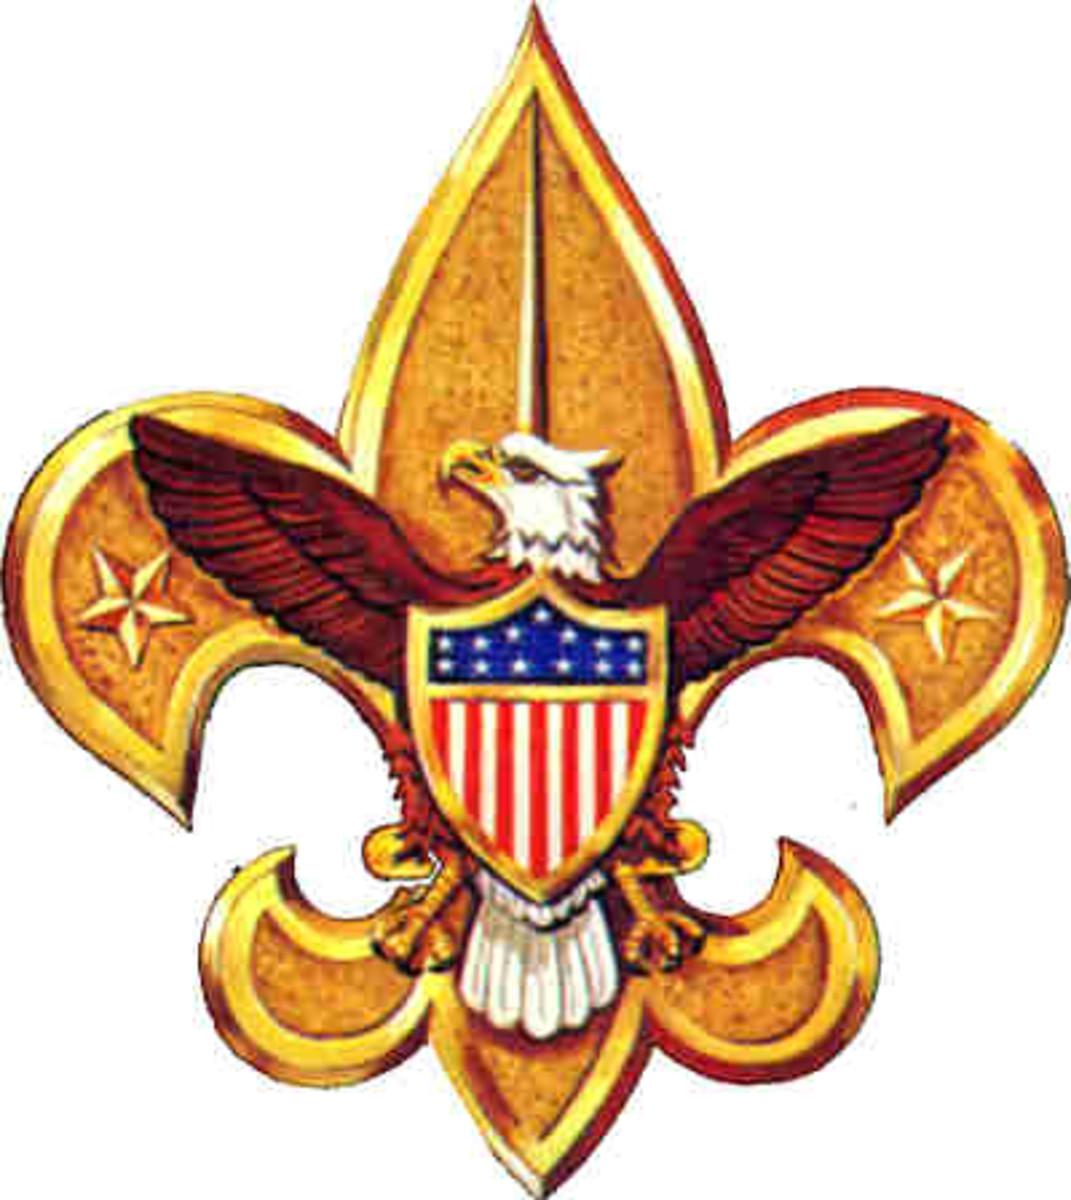 TheBoy Scout  Fleur-de-lis is a symbol to remind the scouts of their three duties: Their duties to themselves, their duties to others and their duties to God.